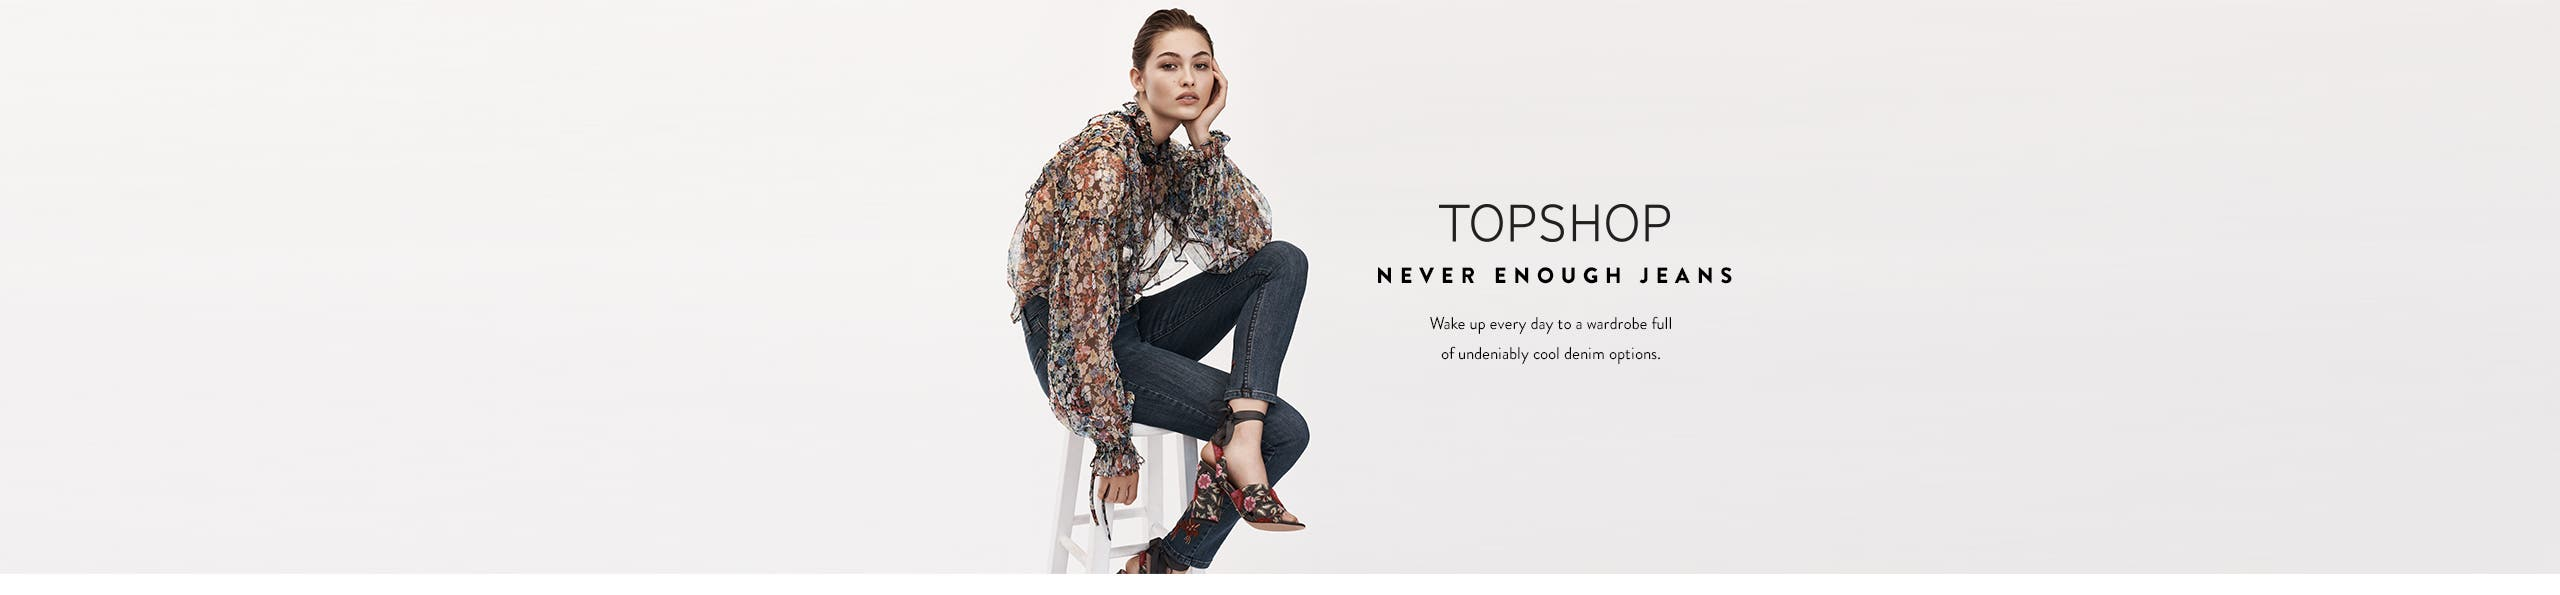 Topshop jeans for women.